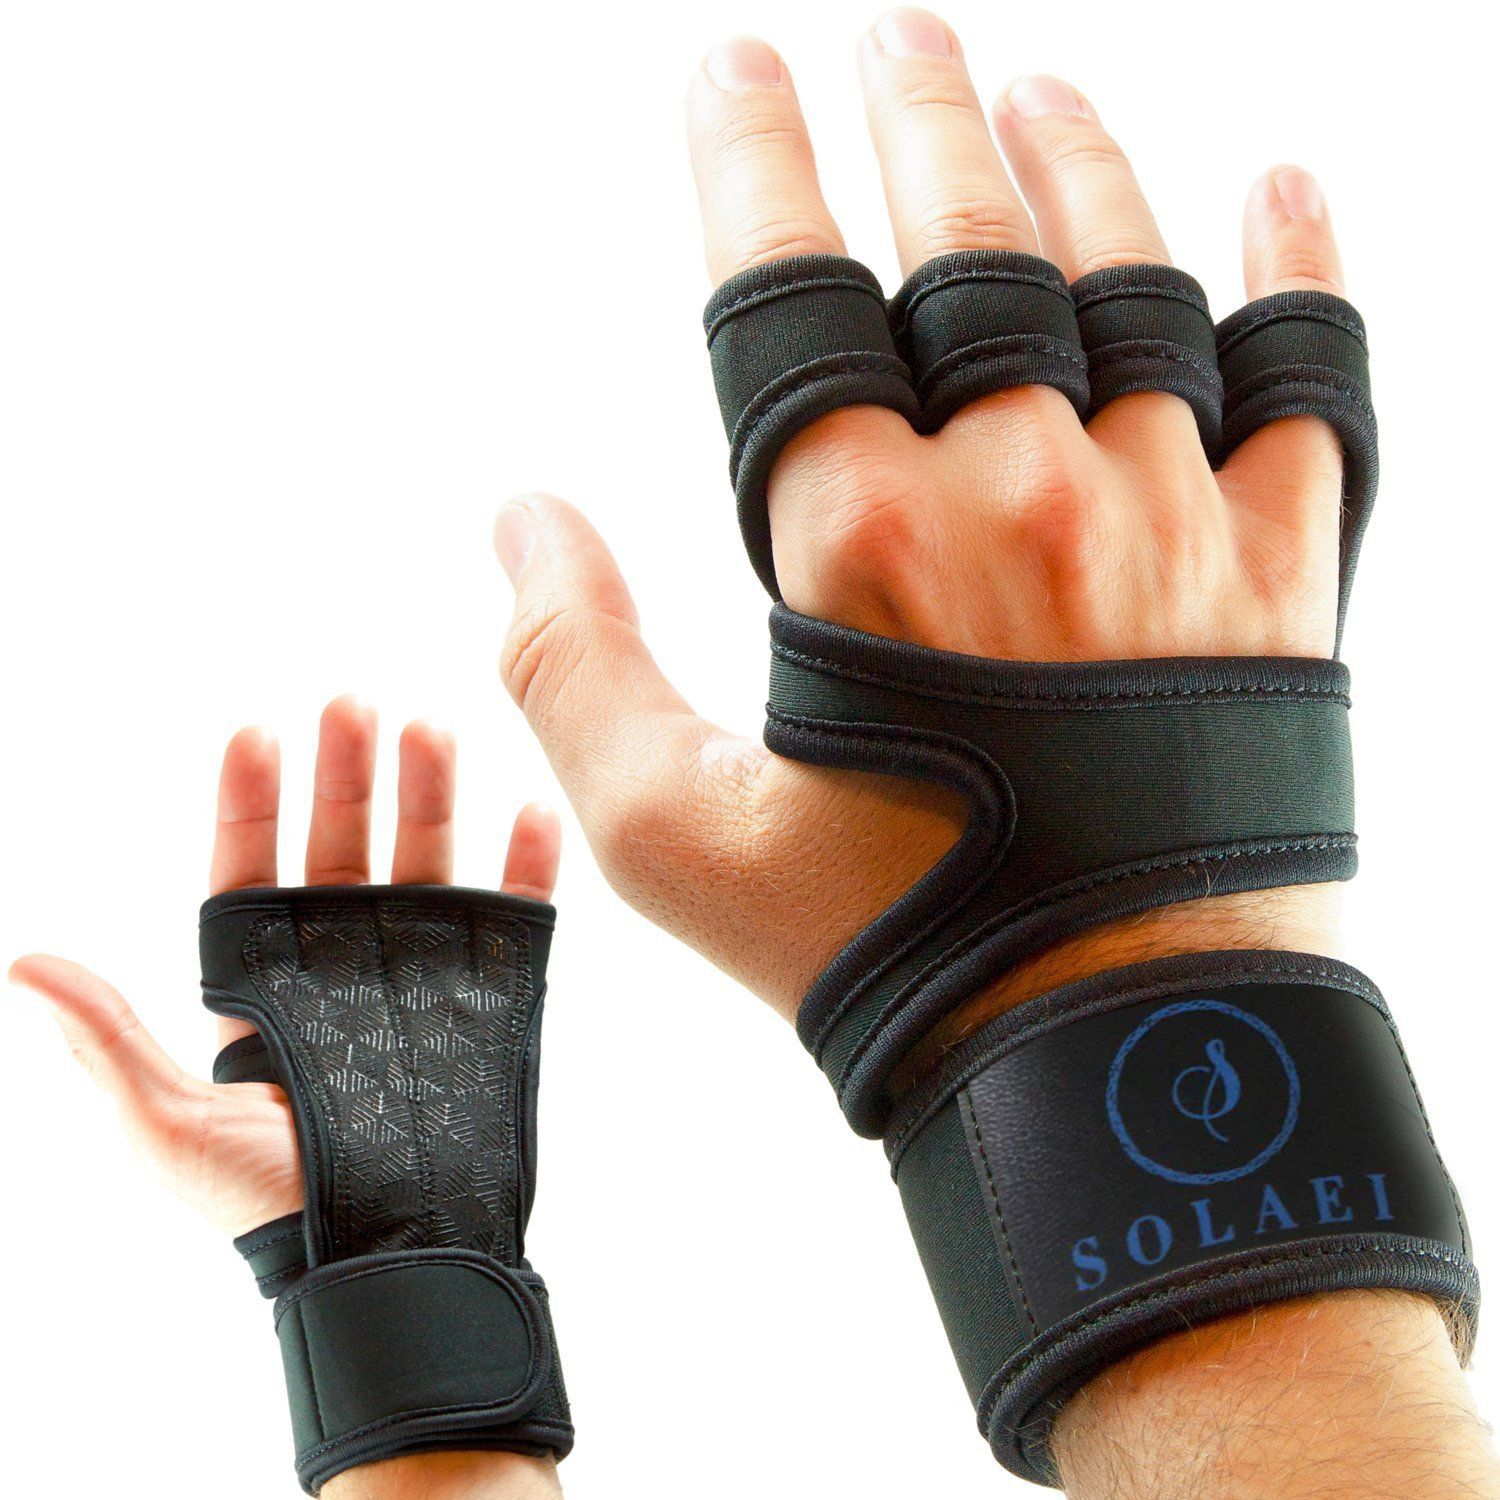 Gymnastics Weightlifting Gym Workout WOD Slip Resistant Palm Padding to avoid Calluses - Suits both Men /& Women Cross Training Gloves with Wrist Support for Fitness Powerlifting